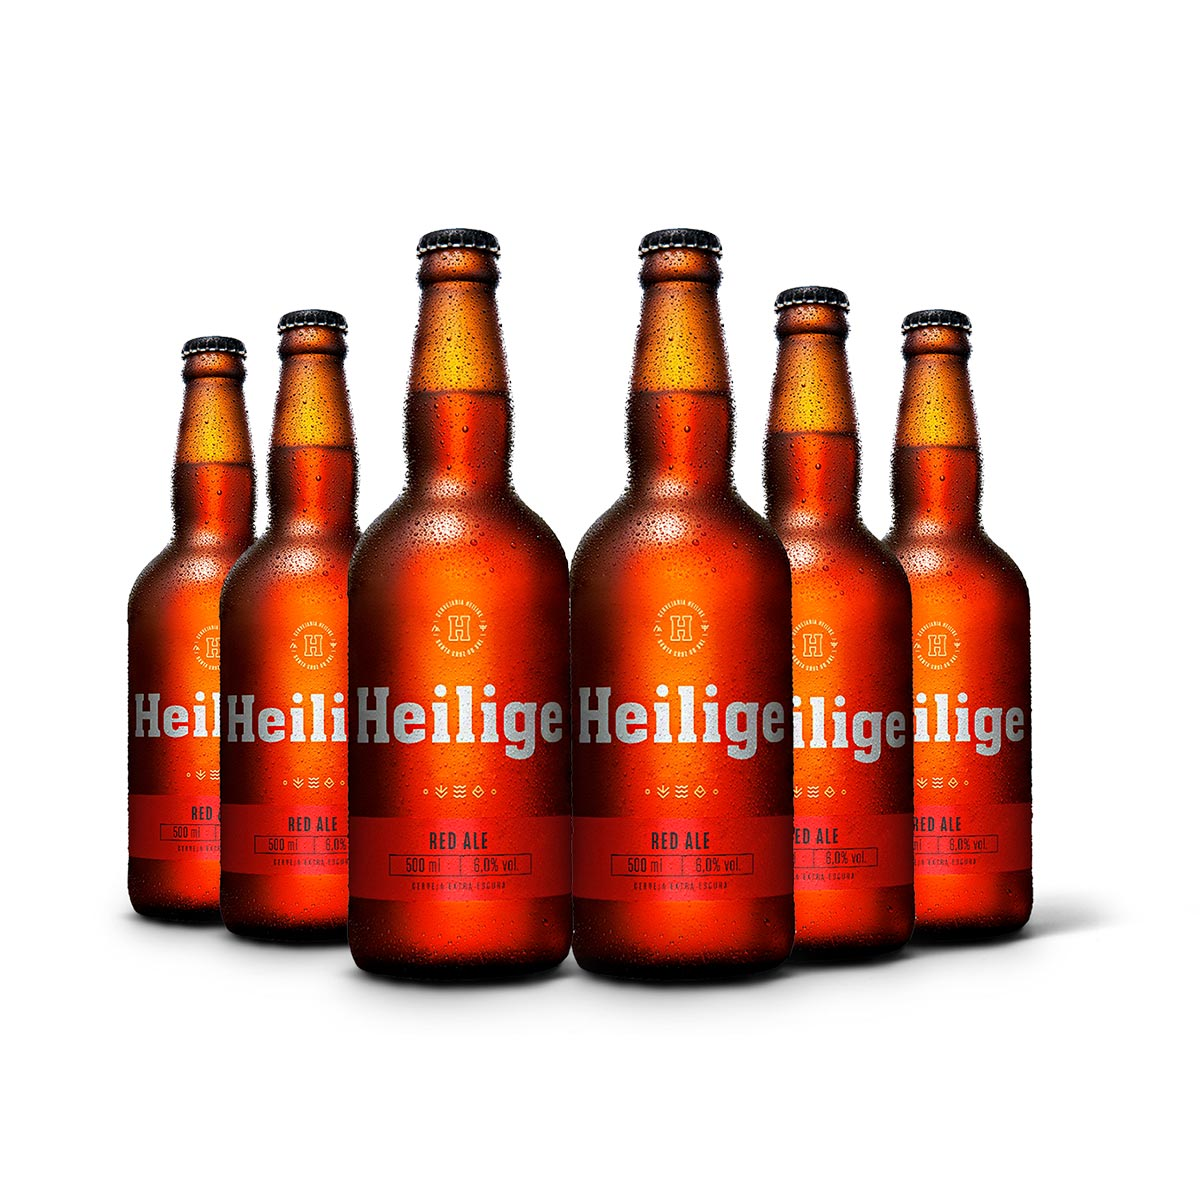 Pack Heilige Red Ale 6 cervejas 500ml